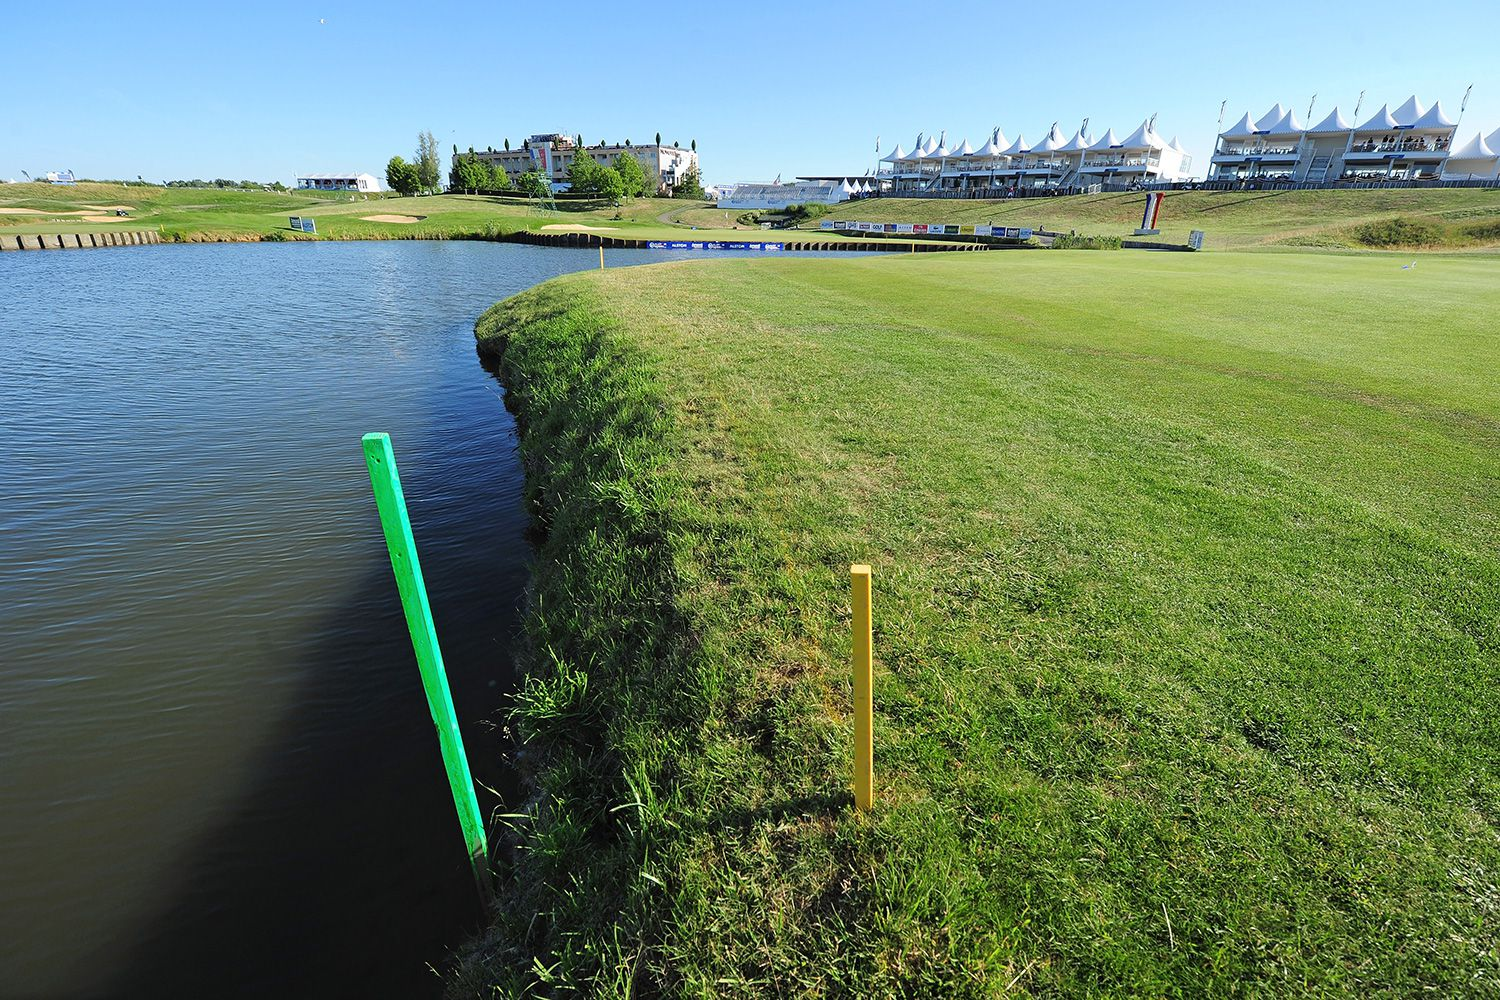 The Meaning of Colored Stakes and Lines on the Golf Course